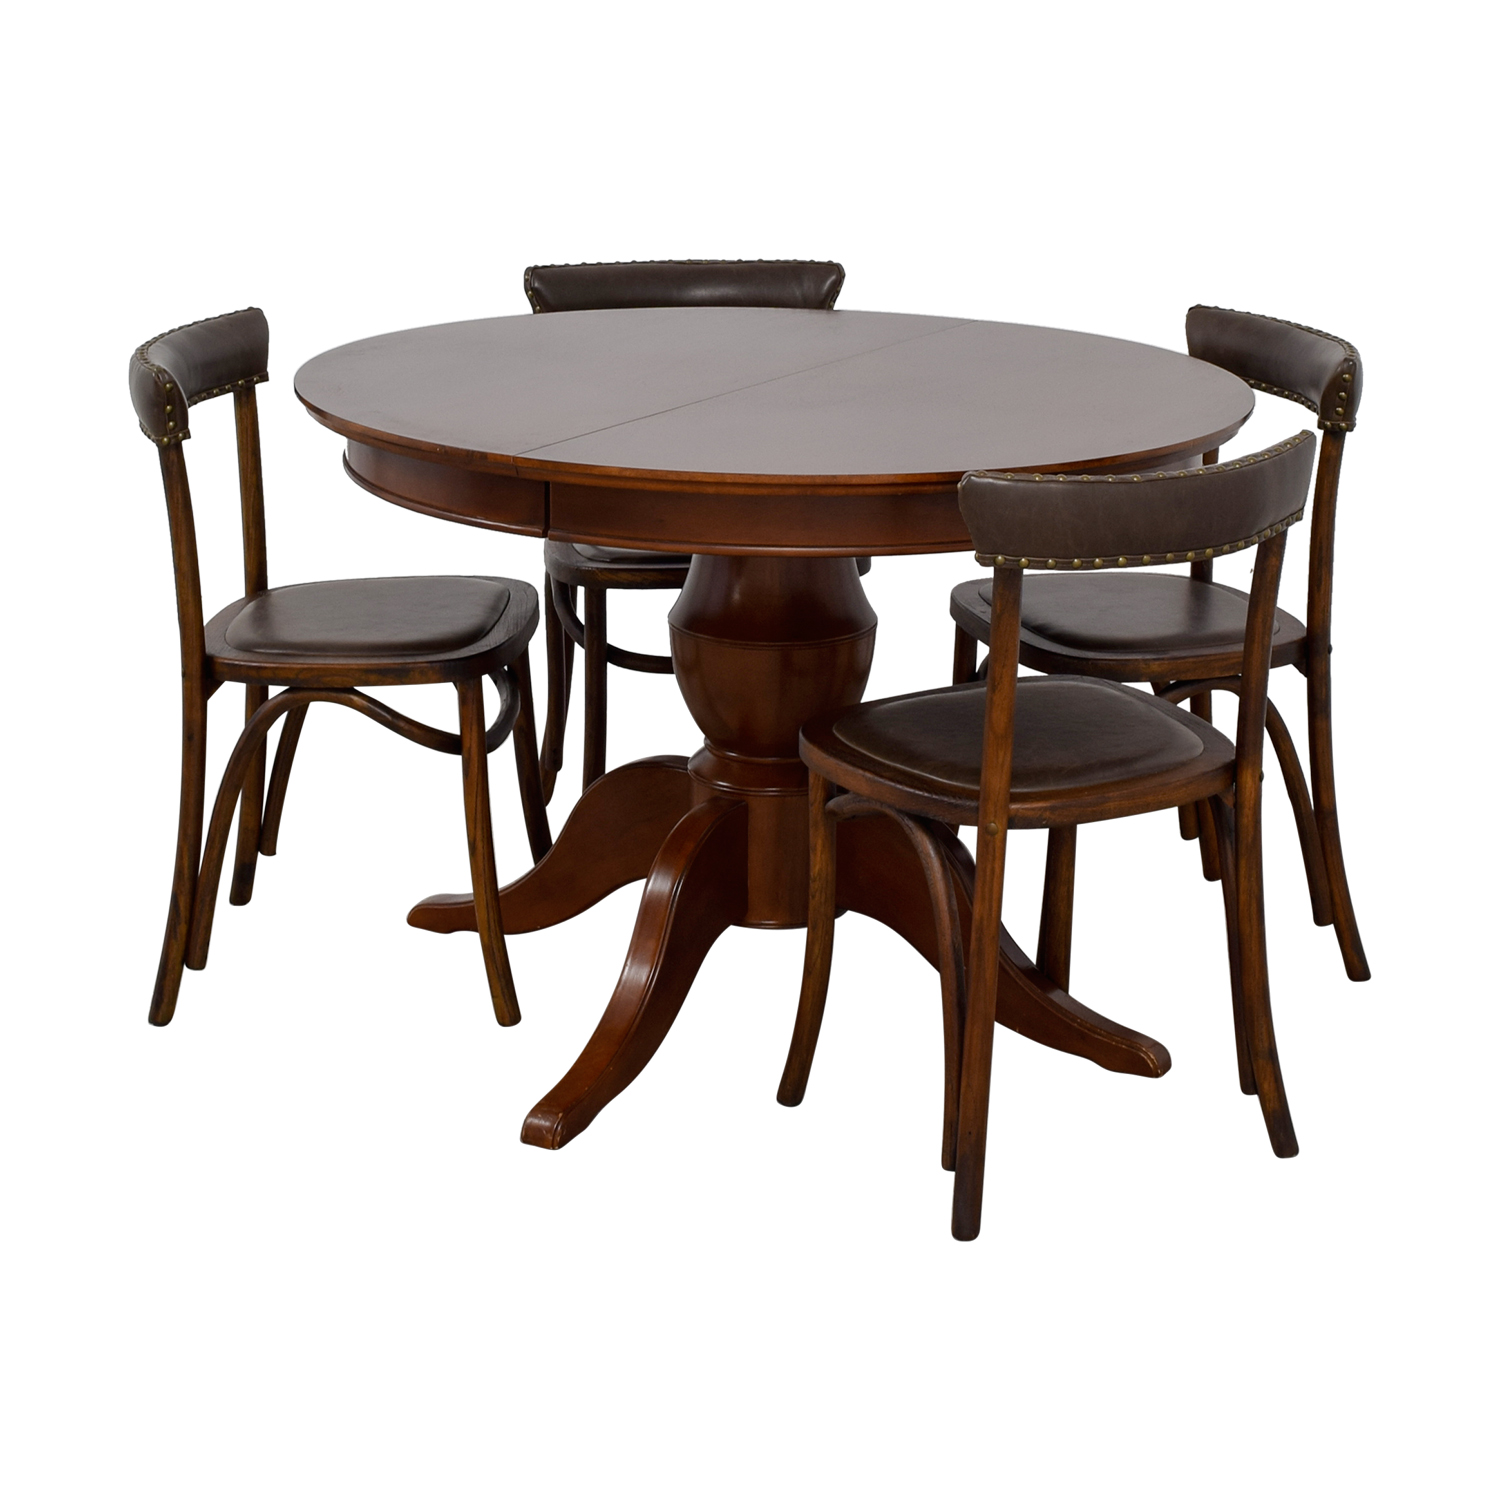 buy Pottery Barn Round Spindle Table with Extension Leaf Dining Set Pottery Barn Dining Sets